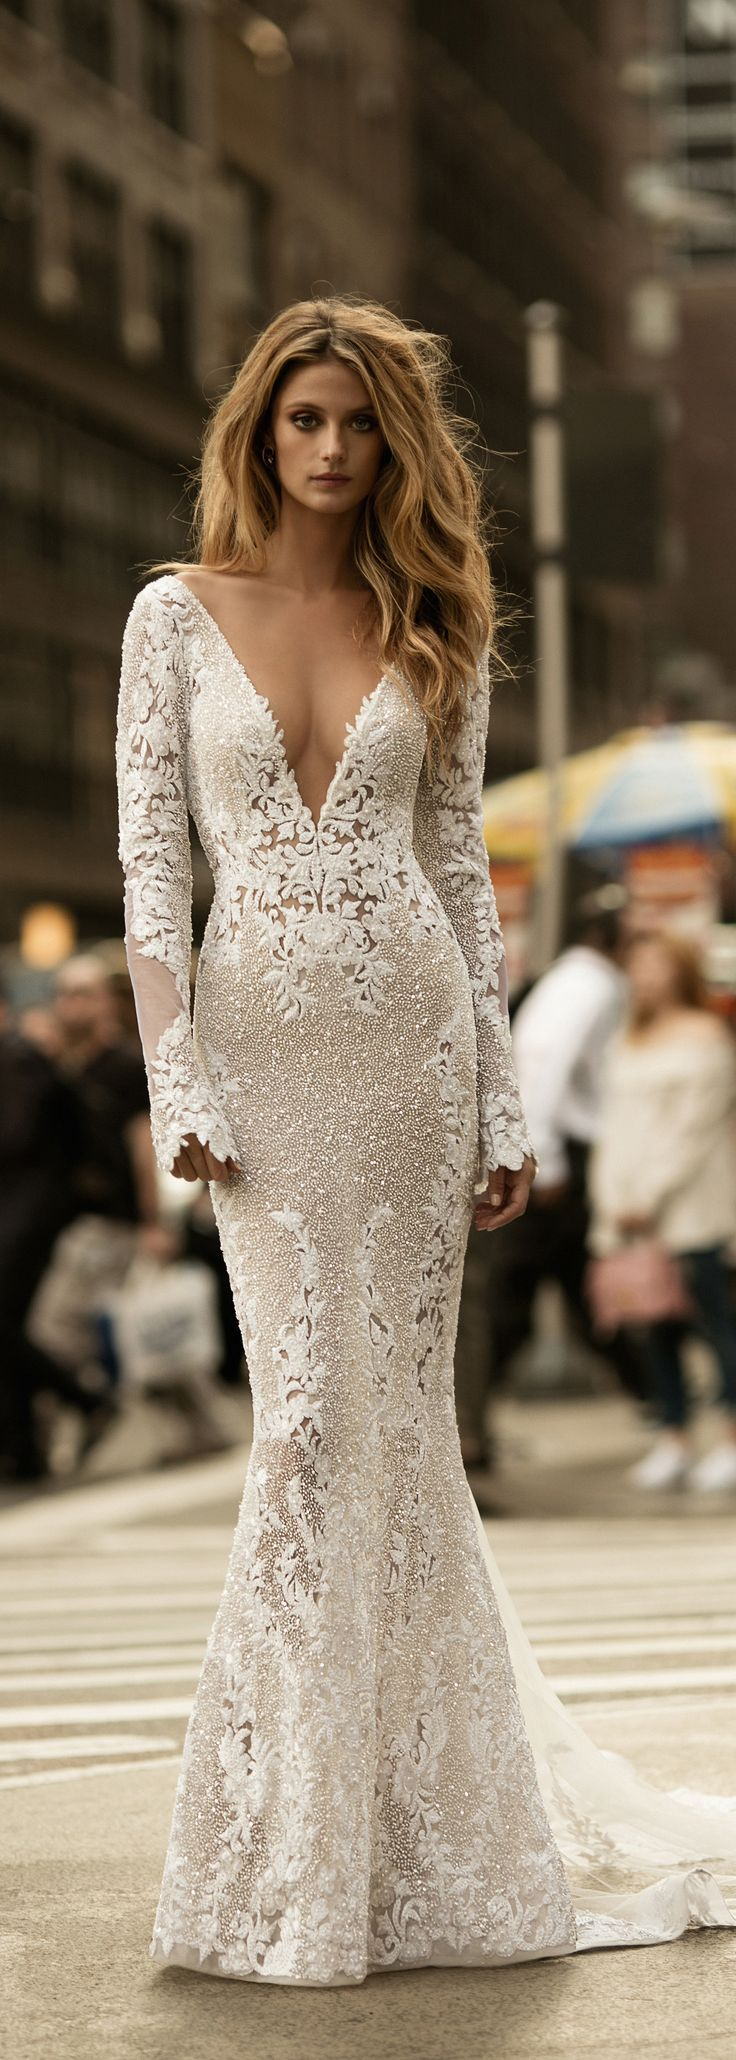 best images about My wedding dresses on Pinterest Mermaid